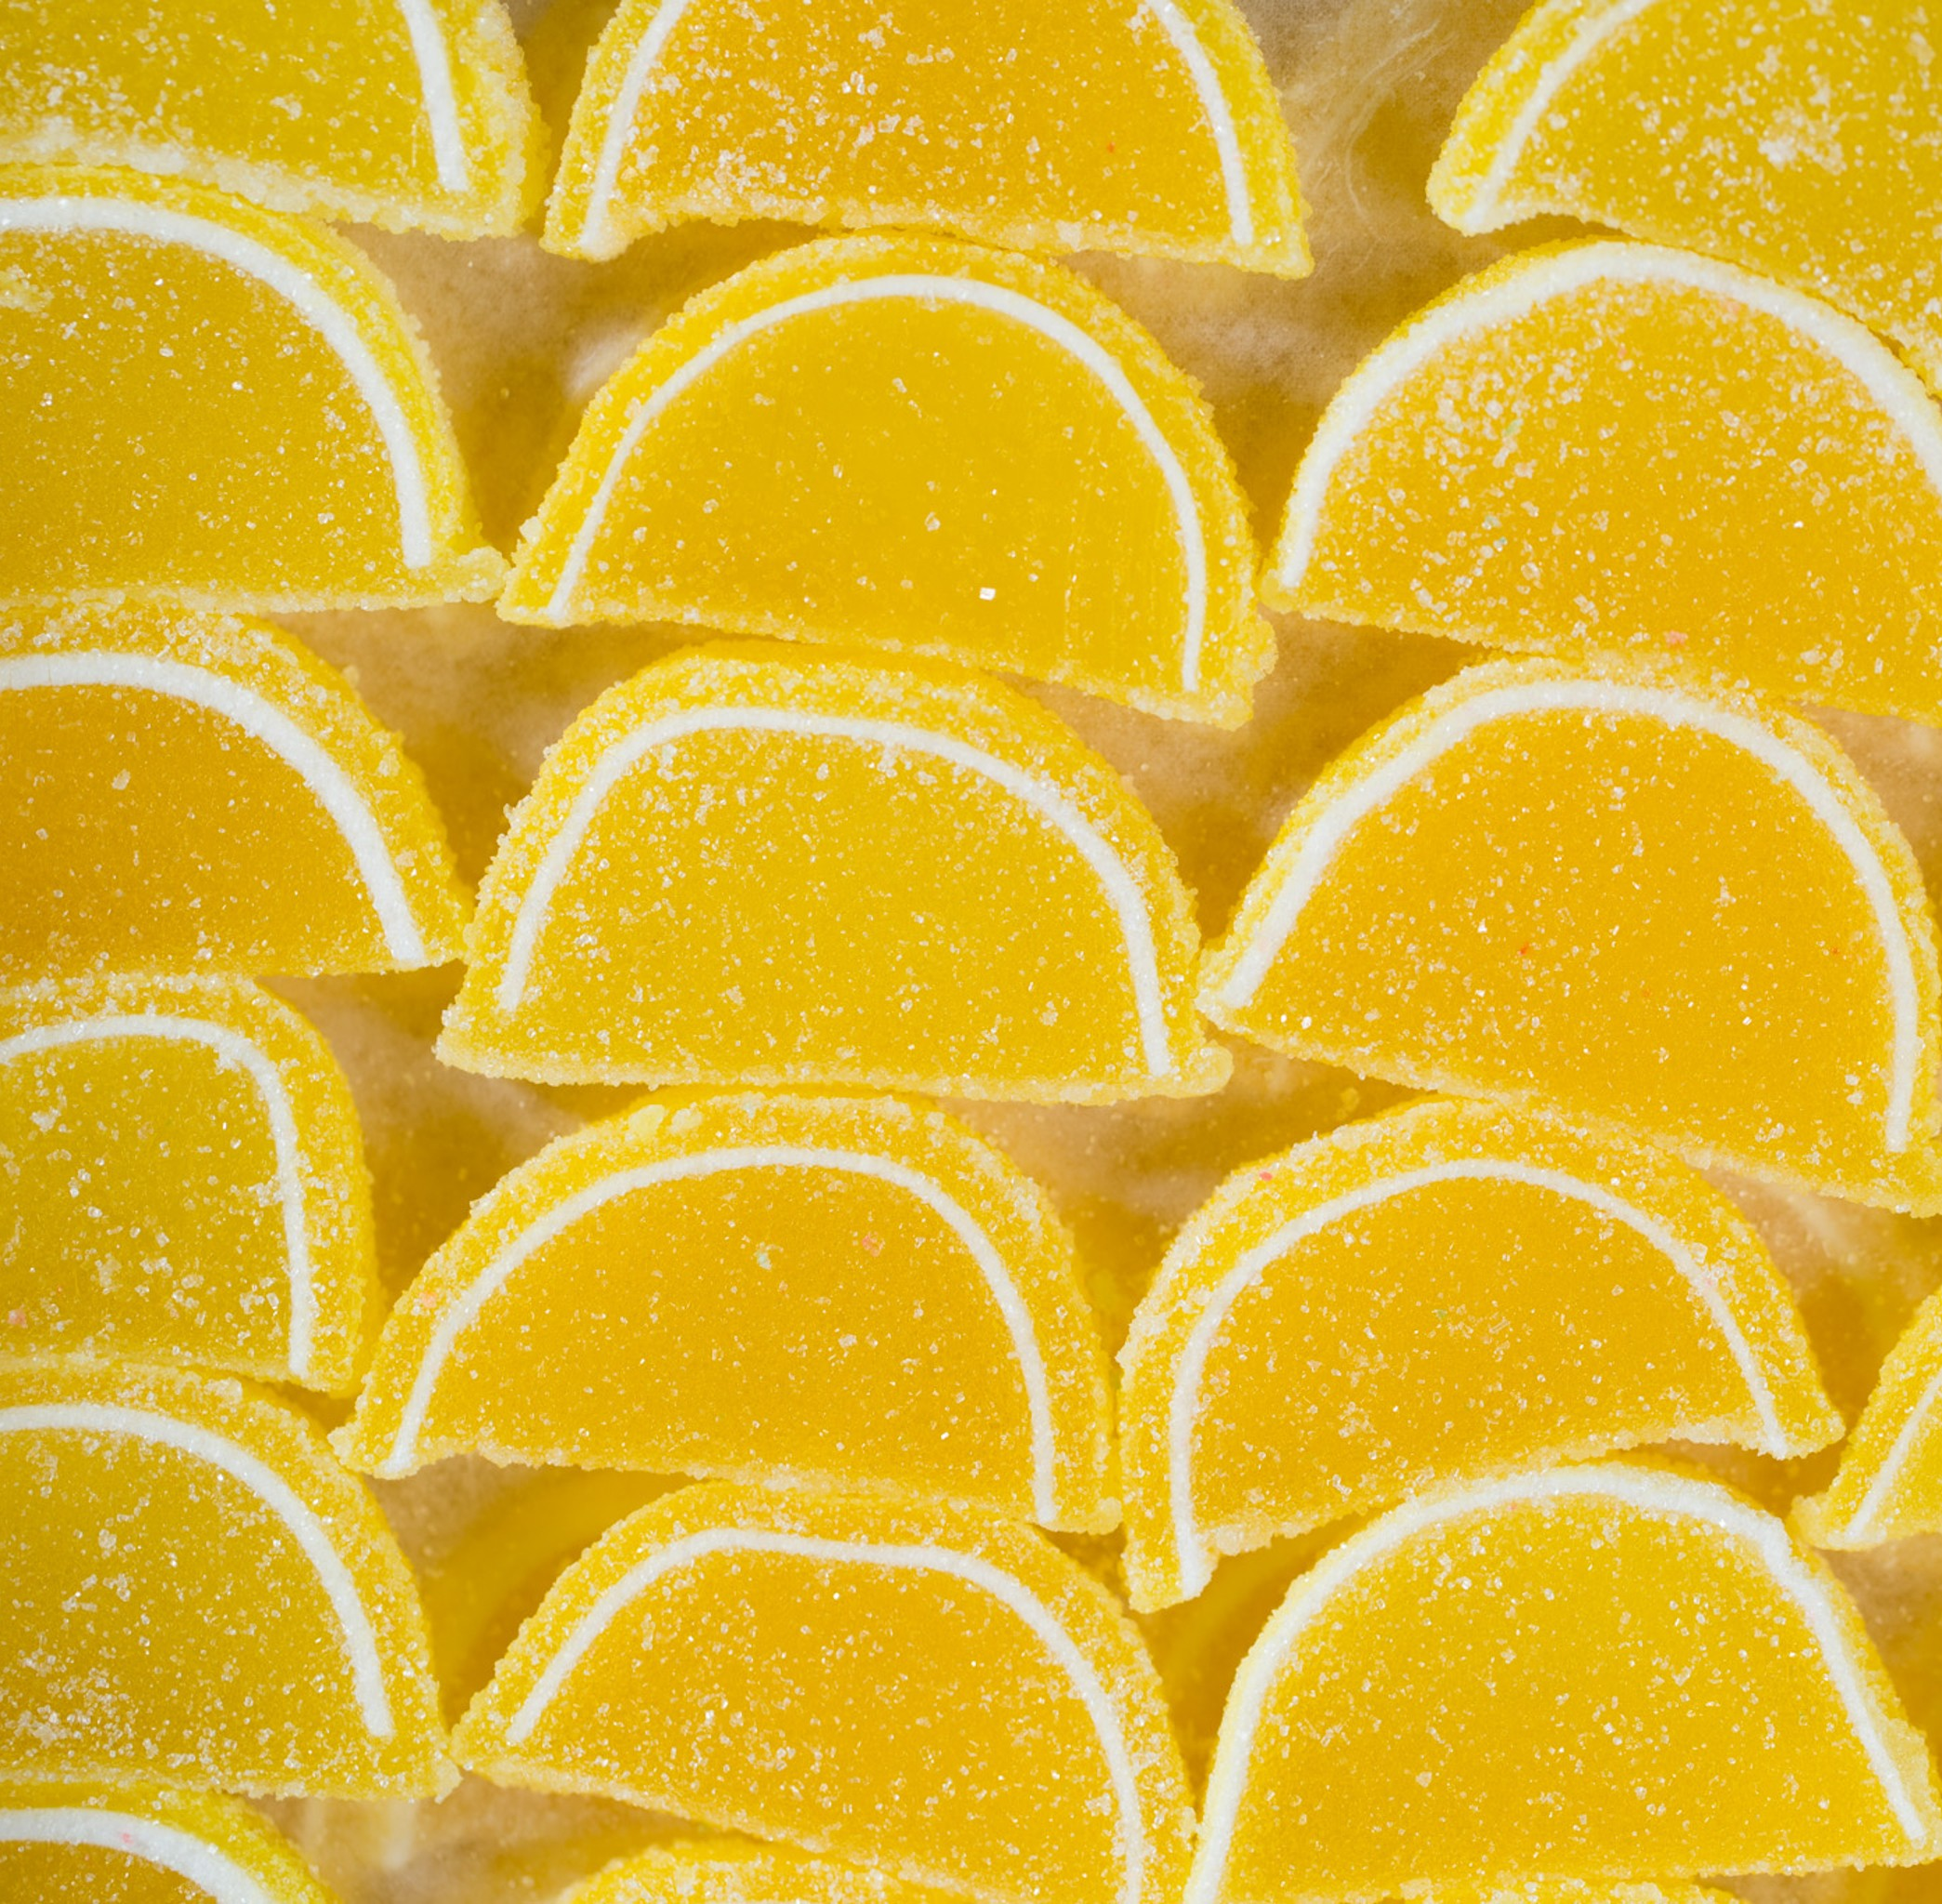 Cavalier Fruit Slices Lemon Sweet City Candy